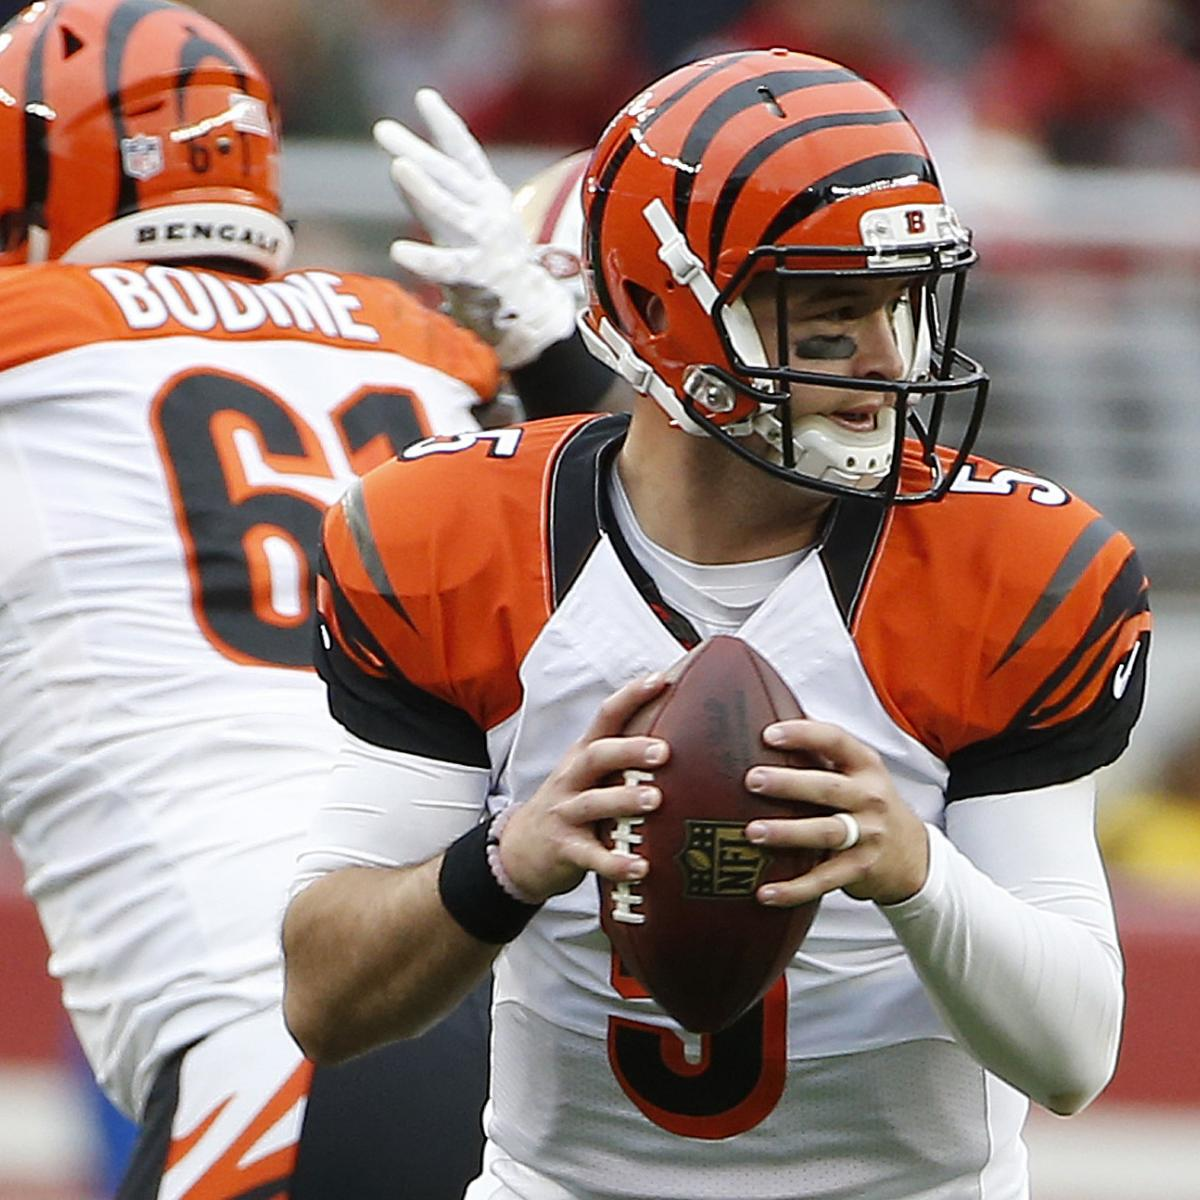 Cincinnati Bengals Vs. Denver Broncos Betting Odds